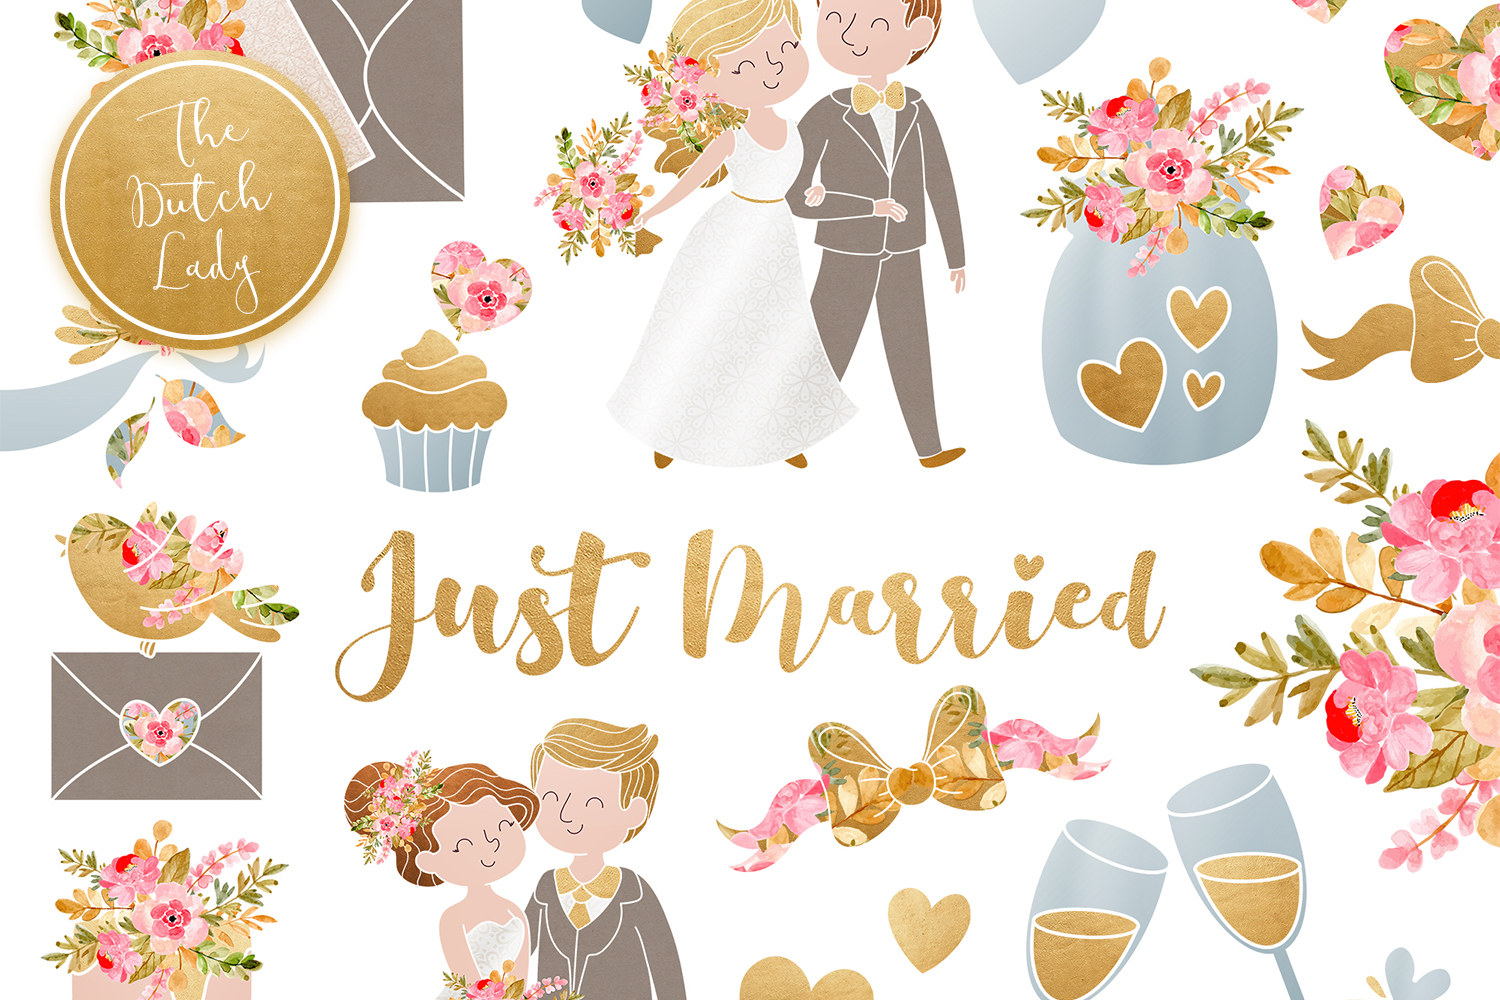 Wedding day clipart jpg freeuse library Wedding Day & Marriage Clipart Set - Vsual jpg freeuse library